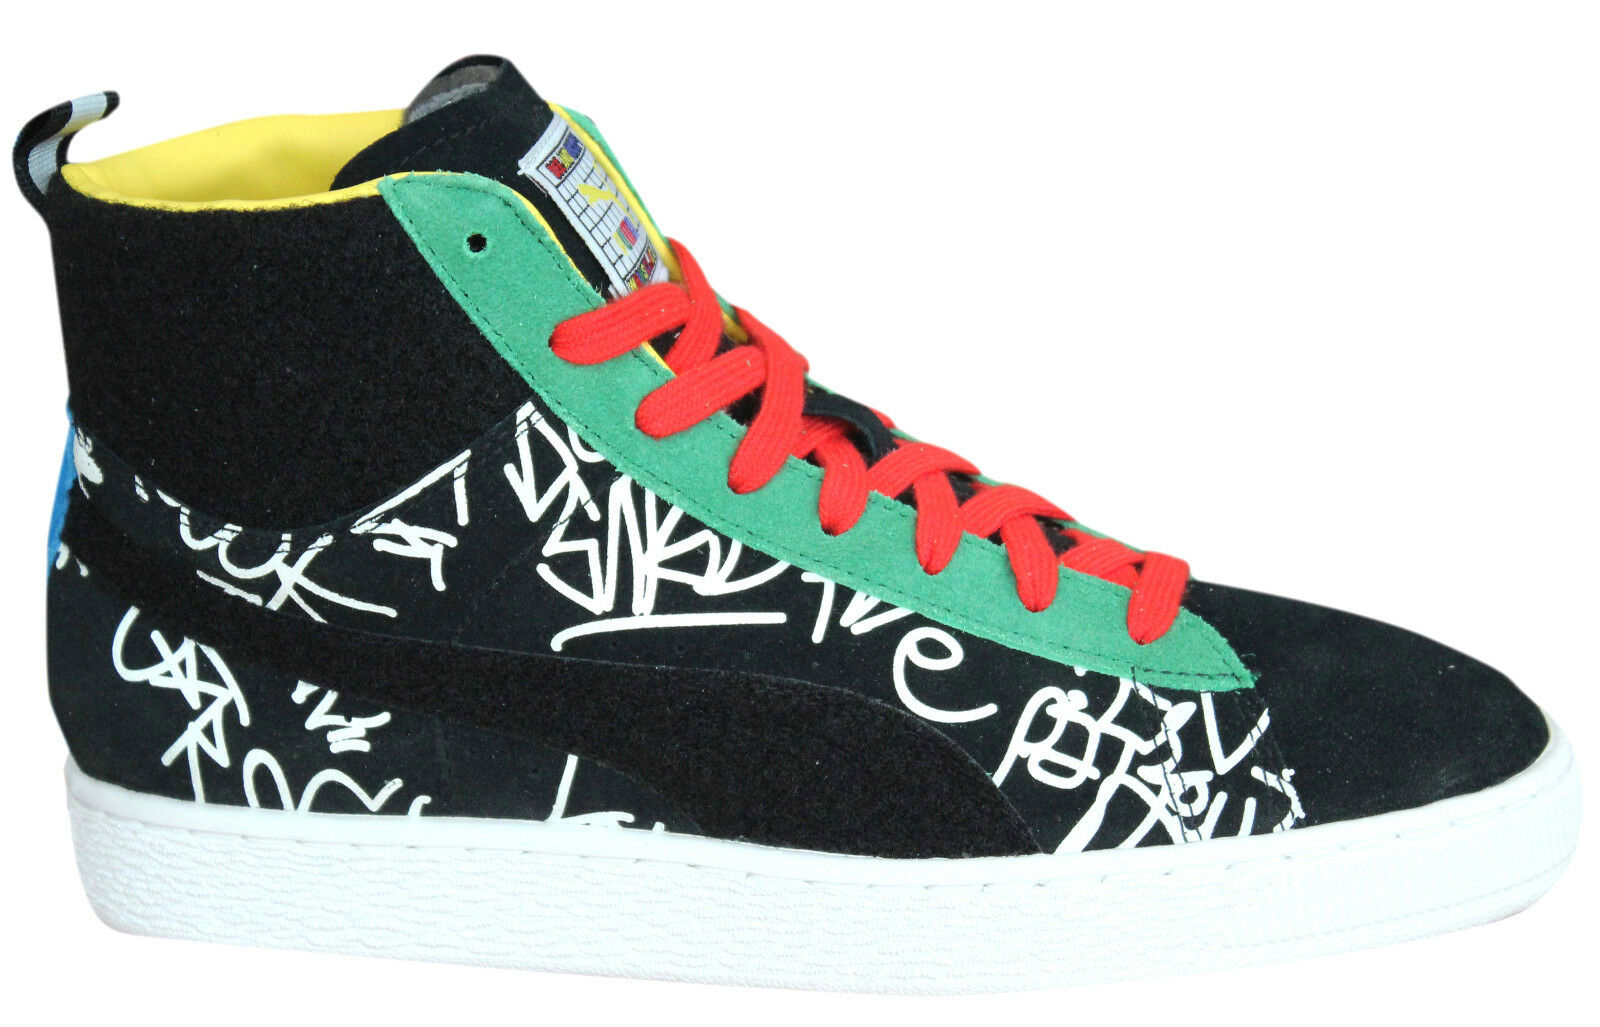 Puma Basket Mi Dee & Ricky Big ABC Baskets Homme à Lacets Chaussures 361499 01 U101